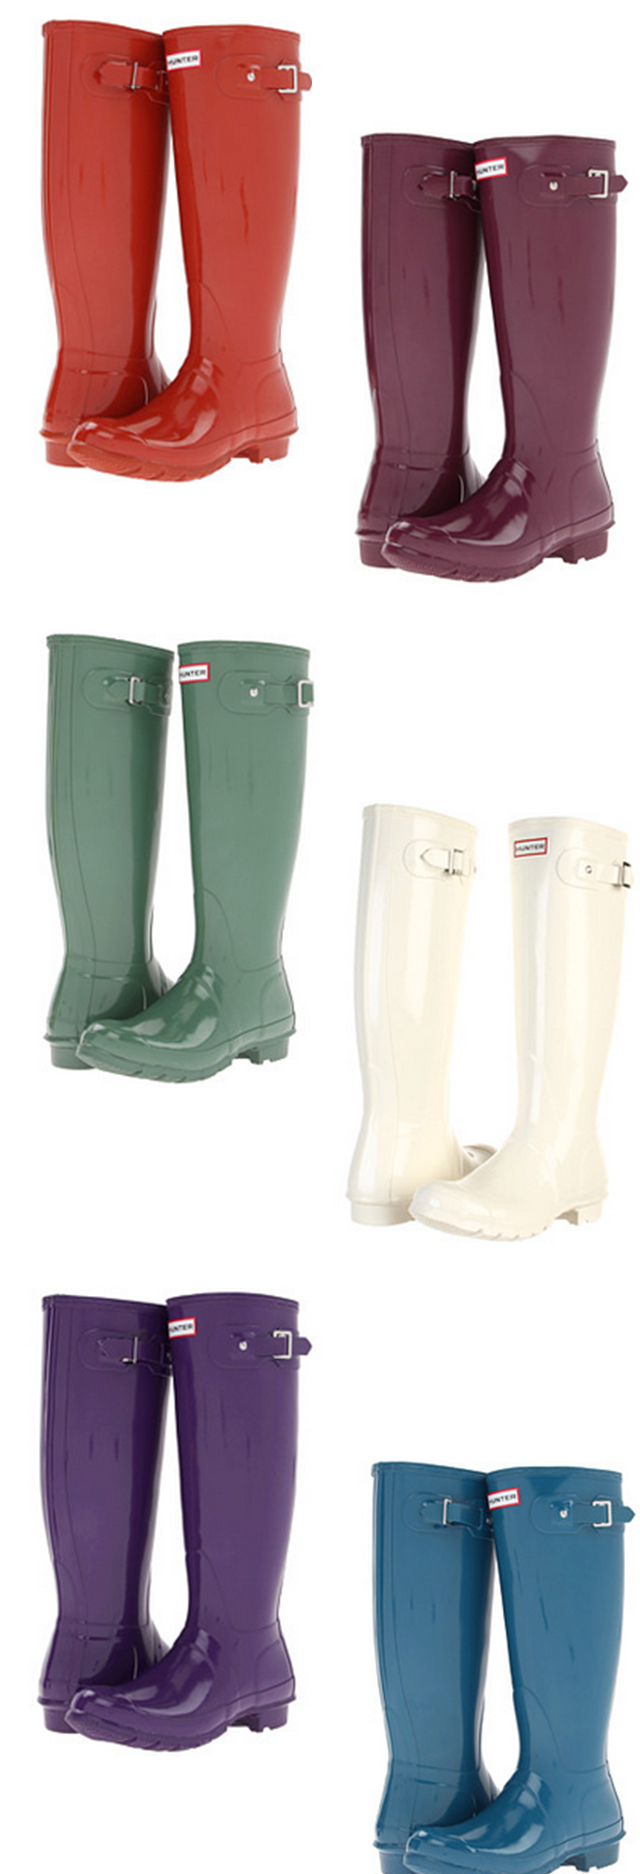 Hunter original wellington boots iull take a pair in each color